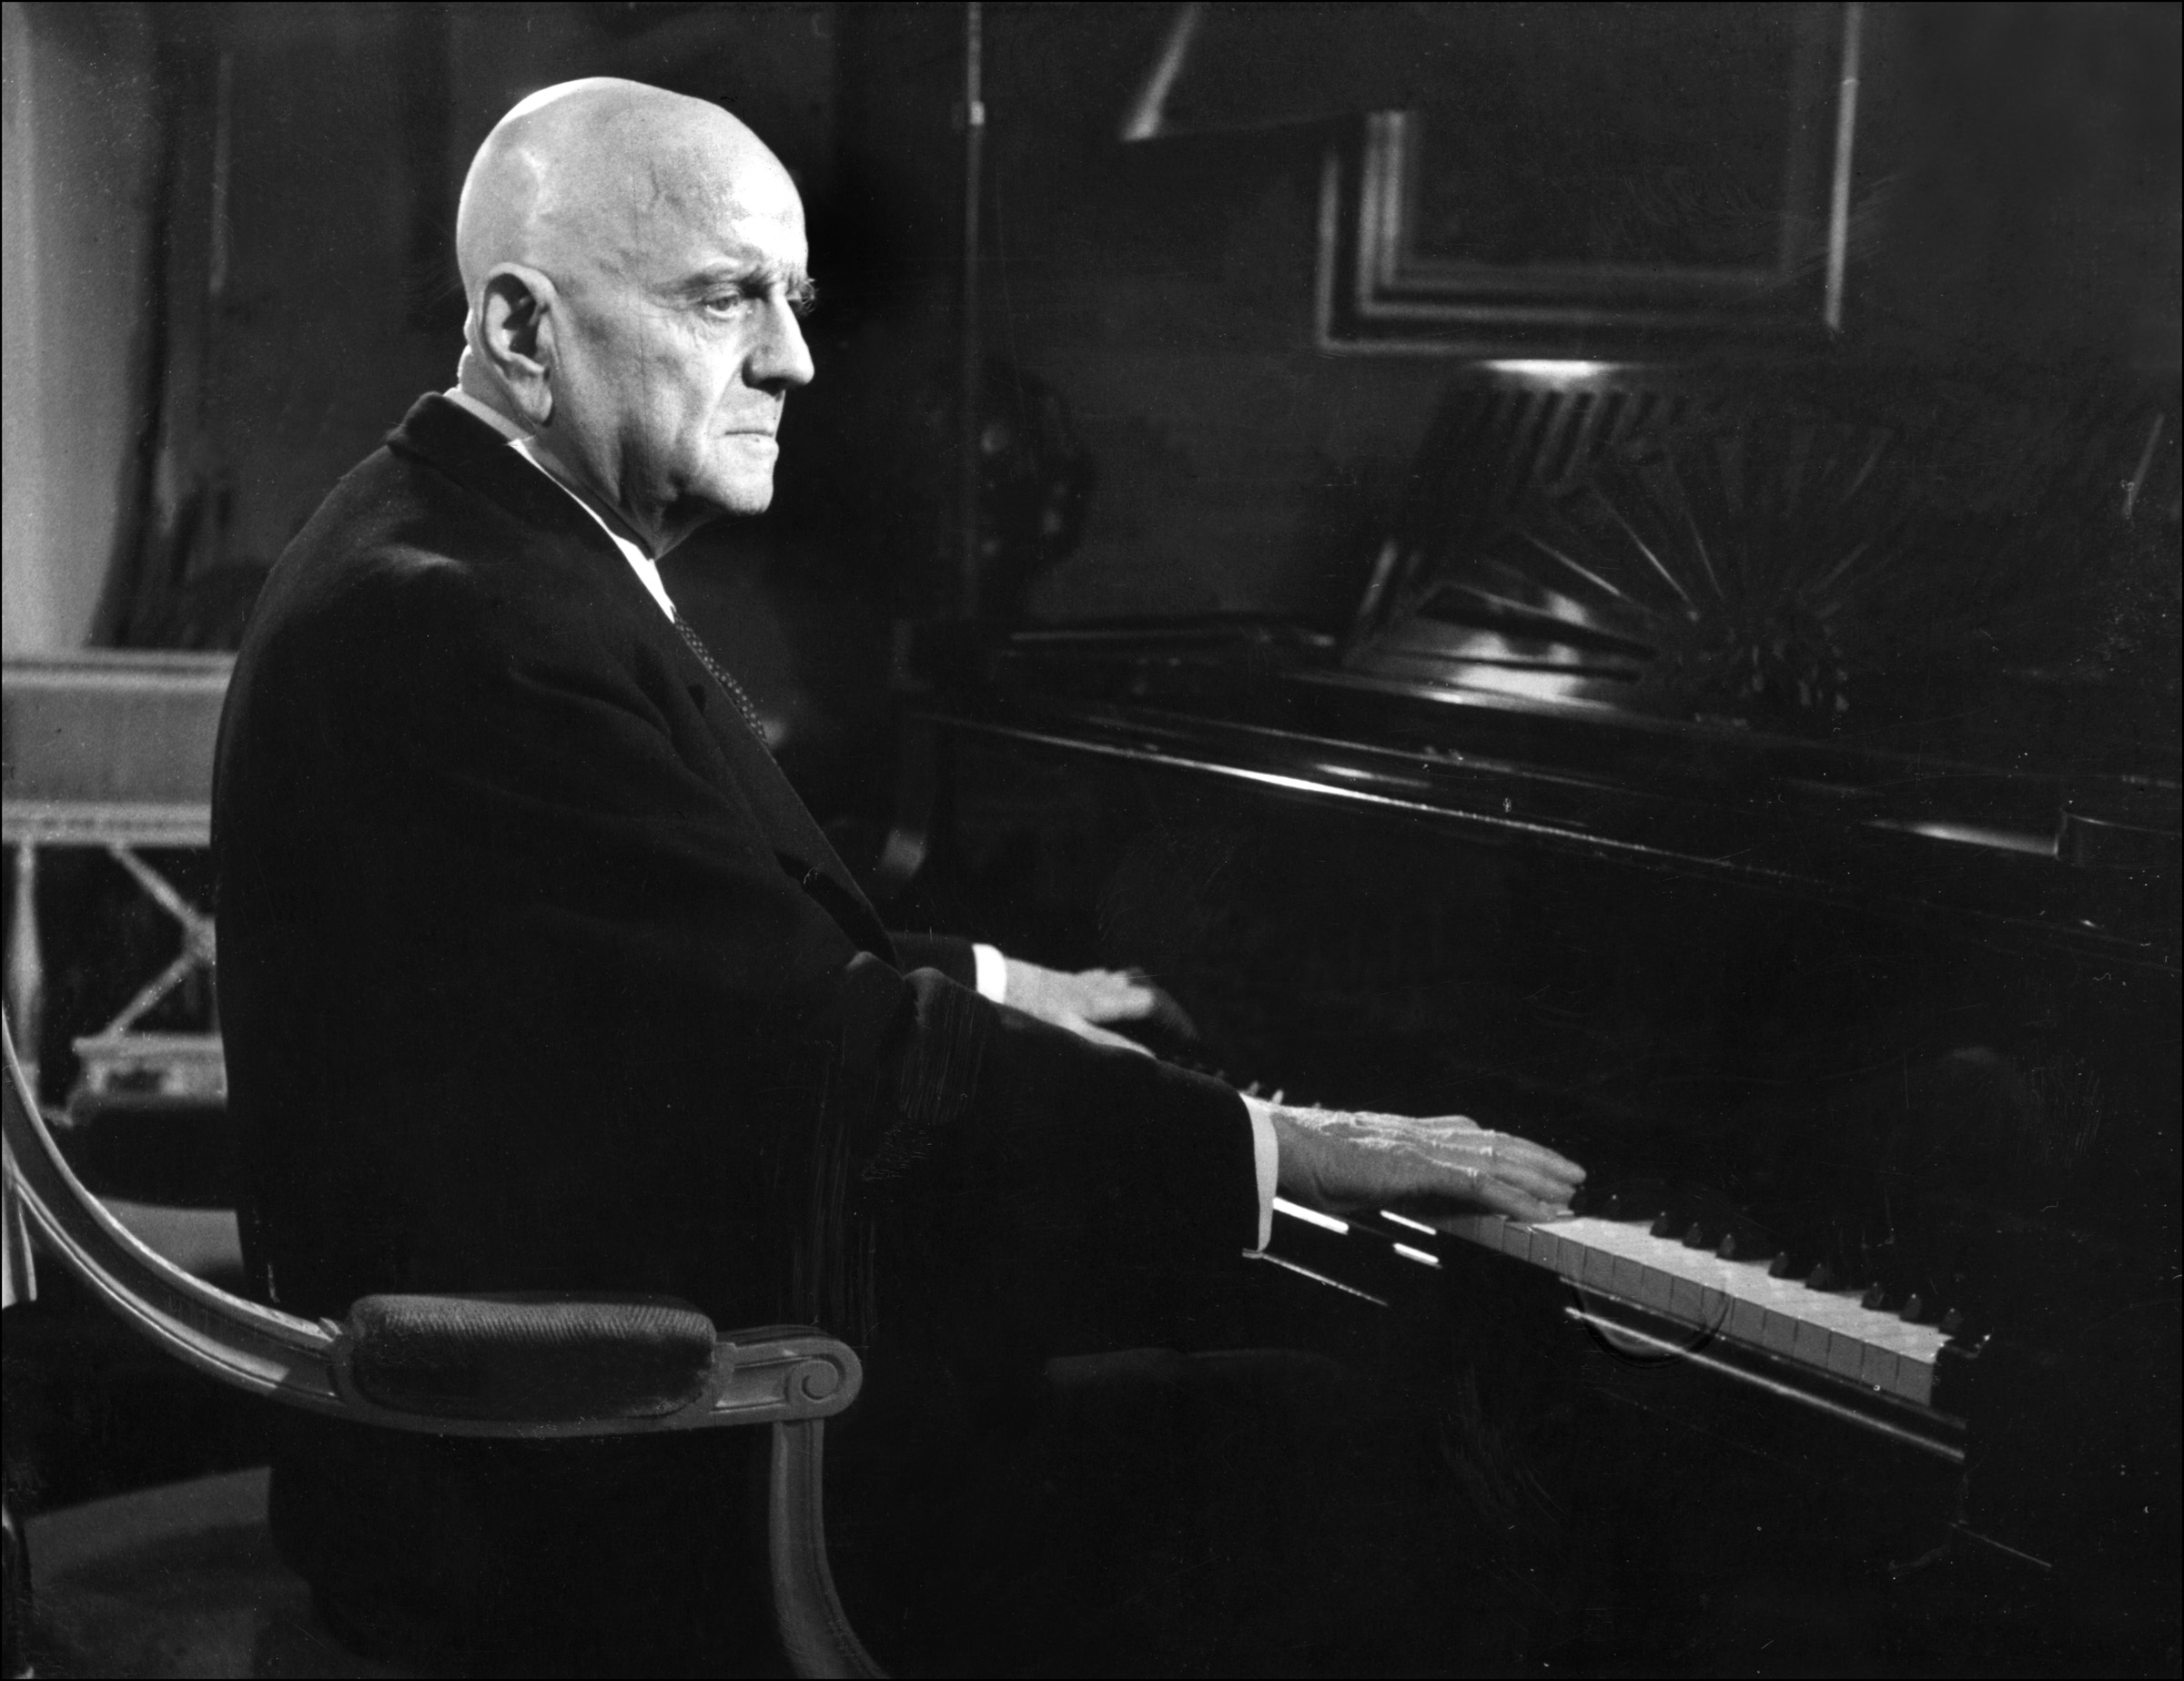 an introduction to the life of jean sibelius This companion provides an up-to-date introduction to the life and music of finland's greatest composer, jean sibelius (1865-1957) divided into four sections, it.